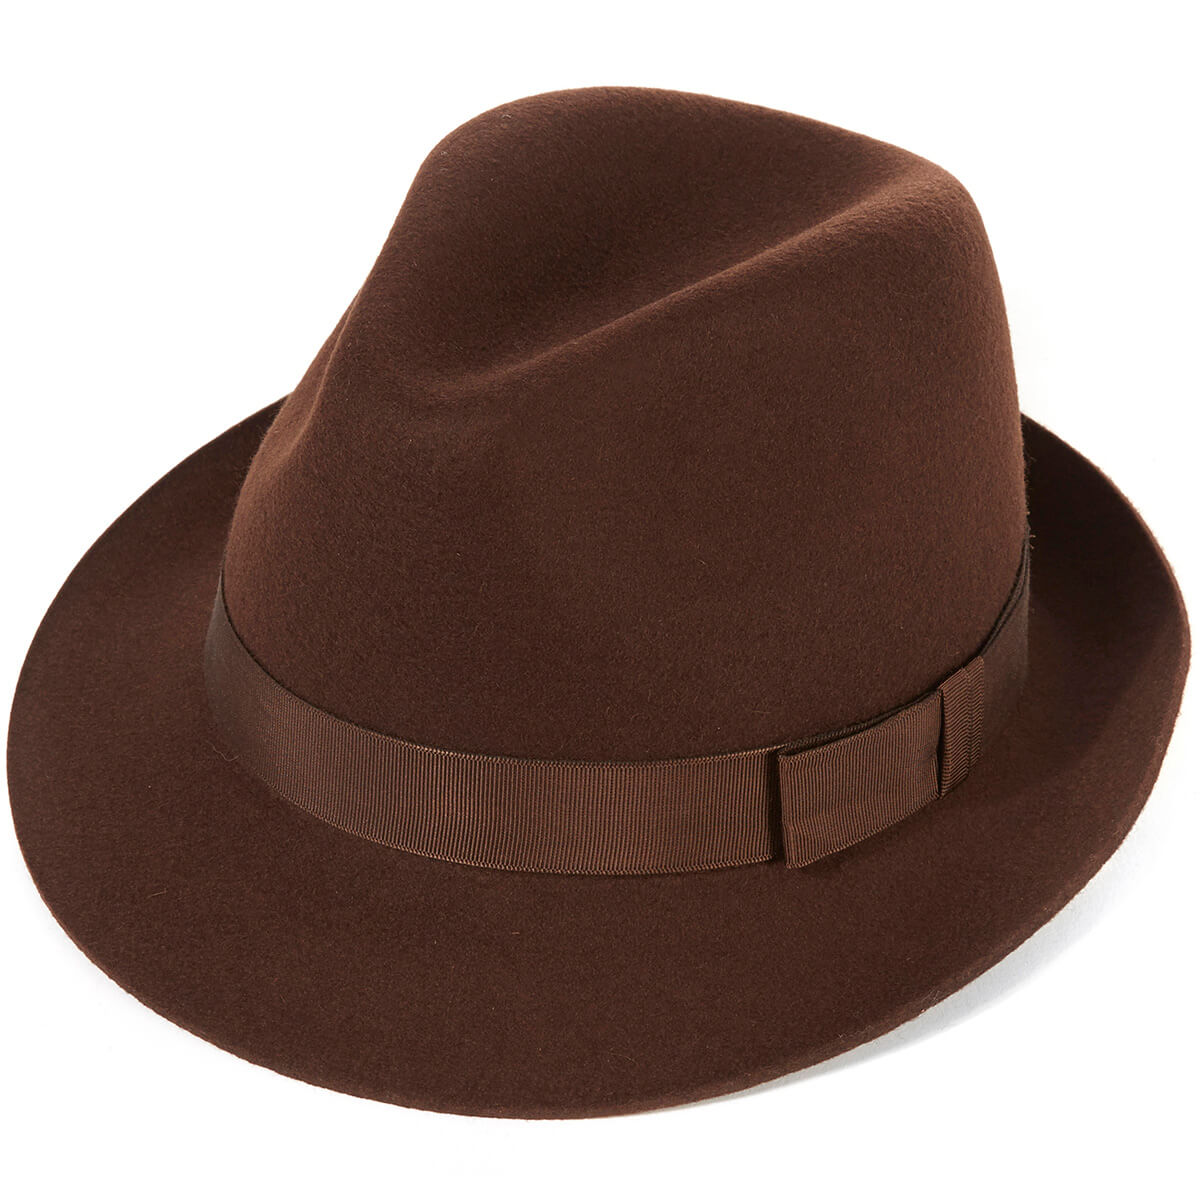 Henley Trilby - Brown in size 58